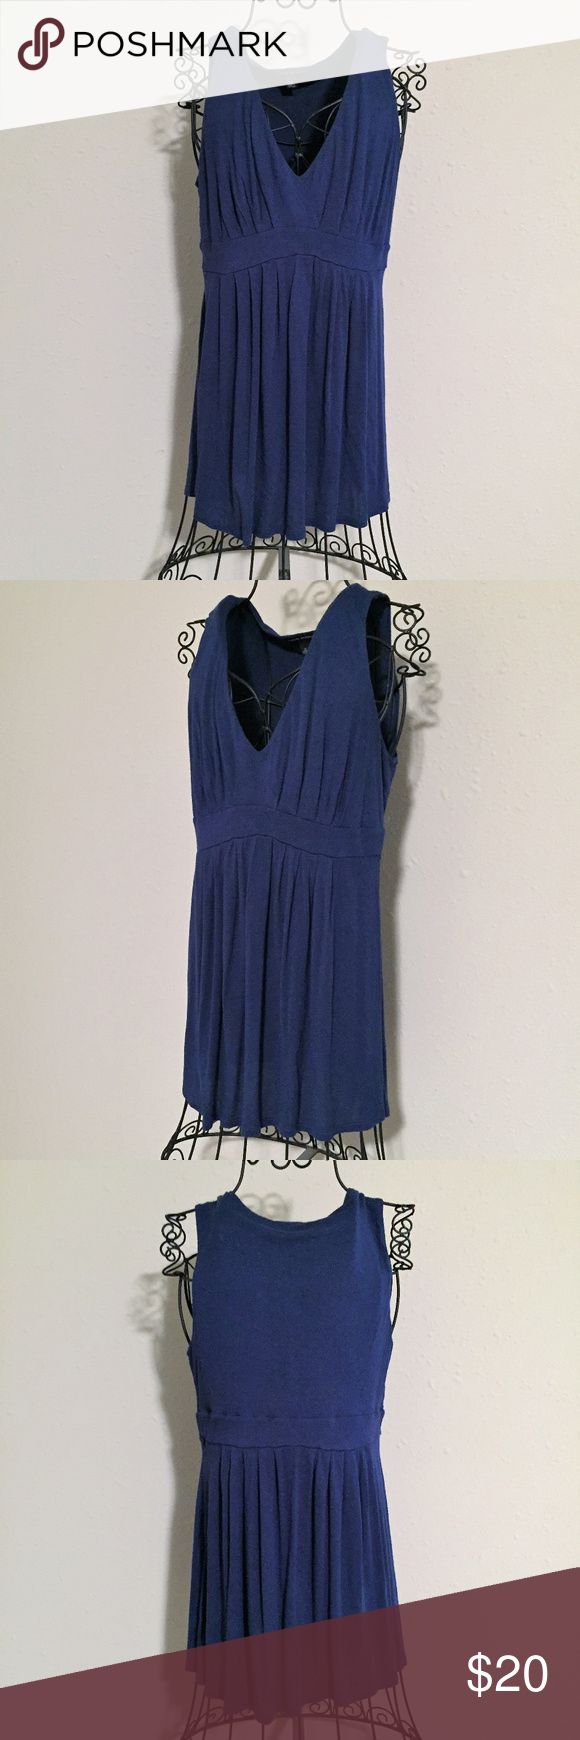 BR V-Neck Sleeveless Top Great for layering! Pair this v-neck top with a neutral cami and head out in style! Navy v-neck, sleeveless top with flowy bodice.  EUC, Smoke Free Home Banana Republic Tops Tank Tops